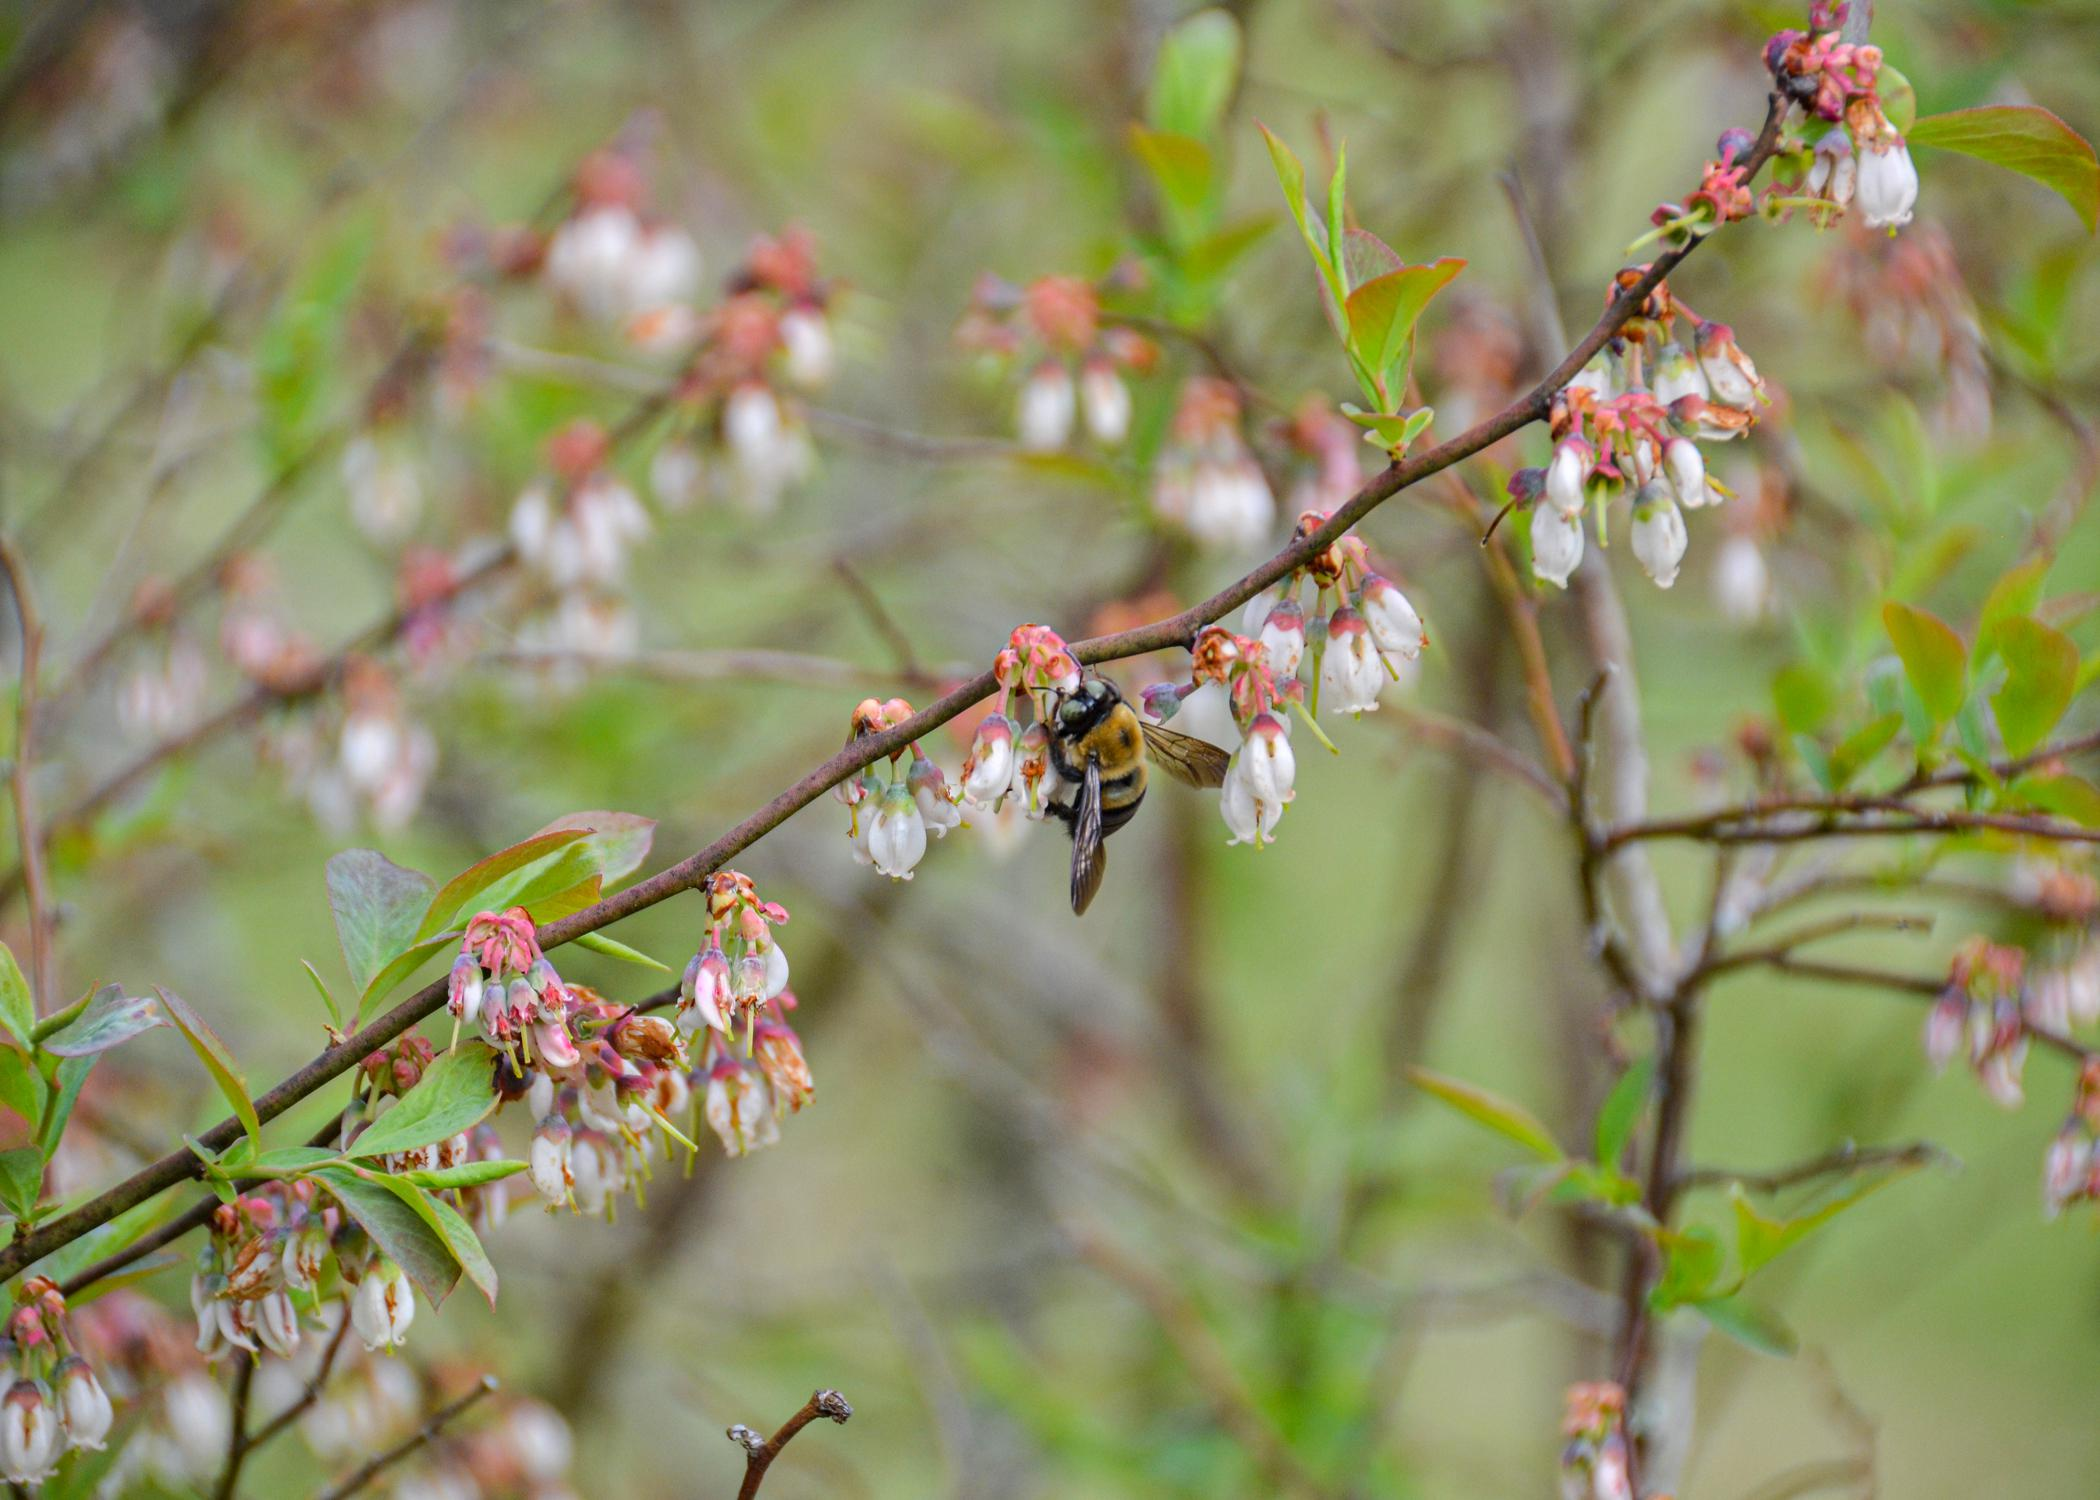 A bee gathers pollen form a blueberry bloom.